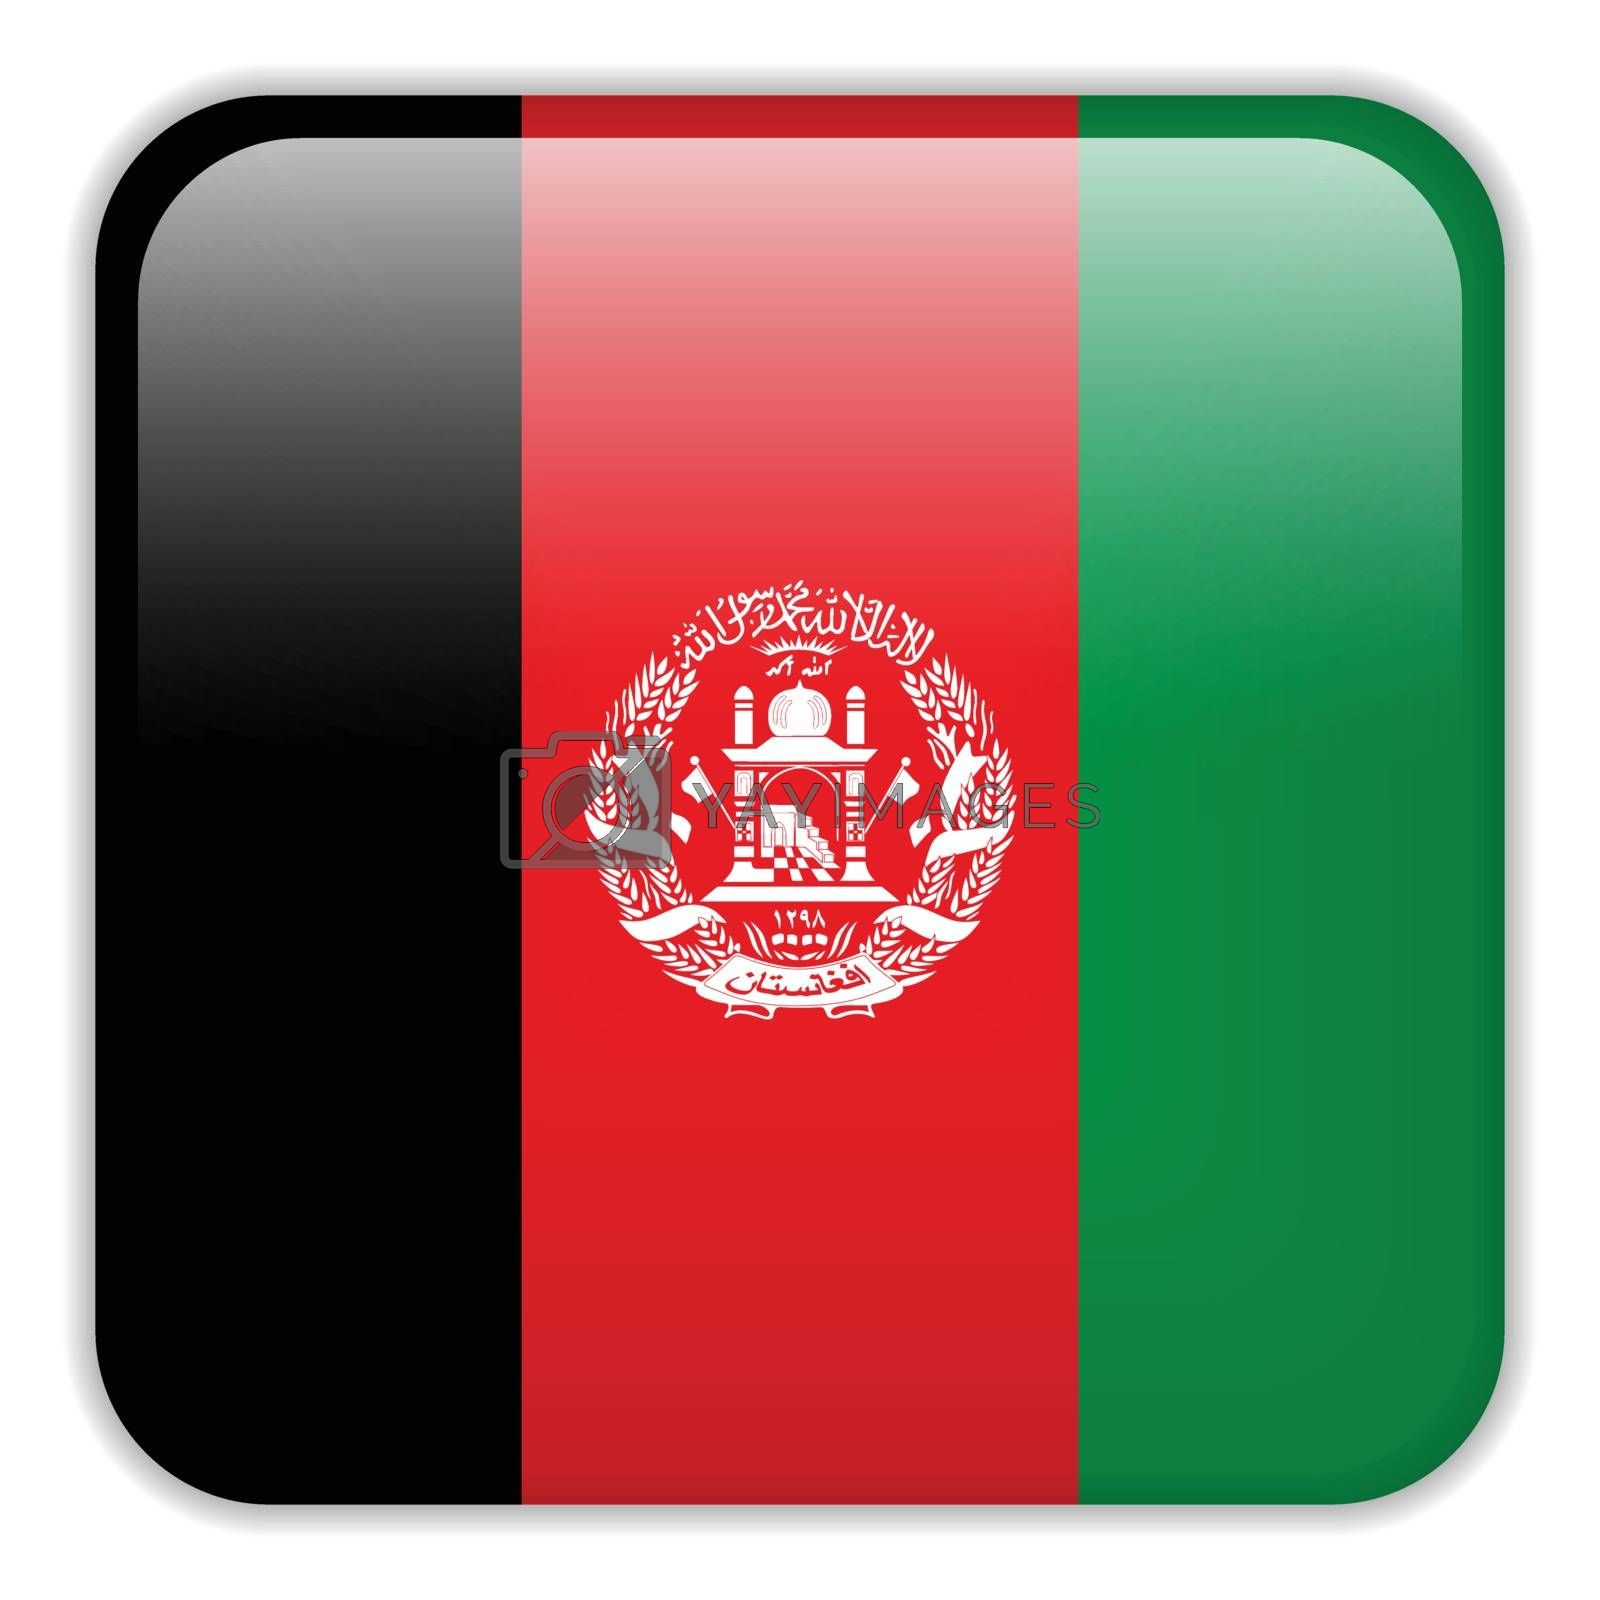 Vector - Afghanistan Flag Smartphone Application Square Buttons